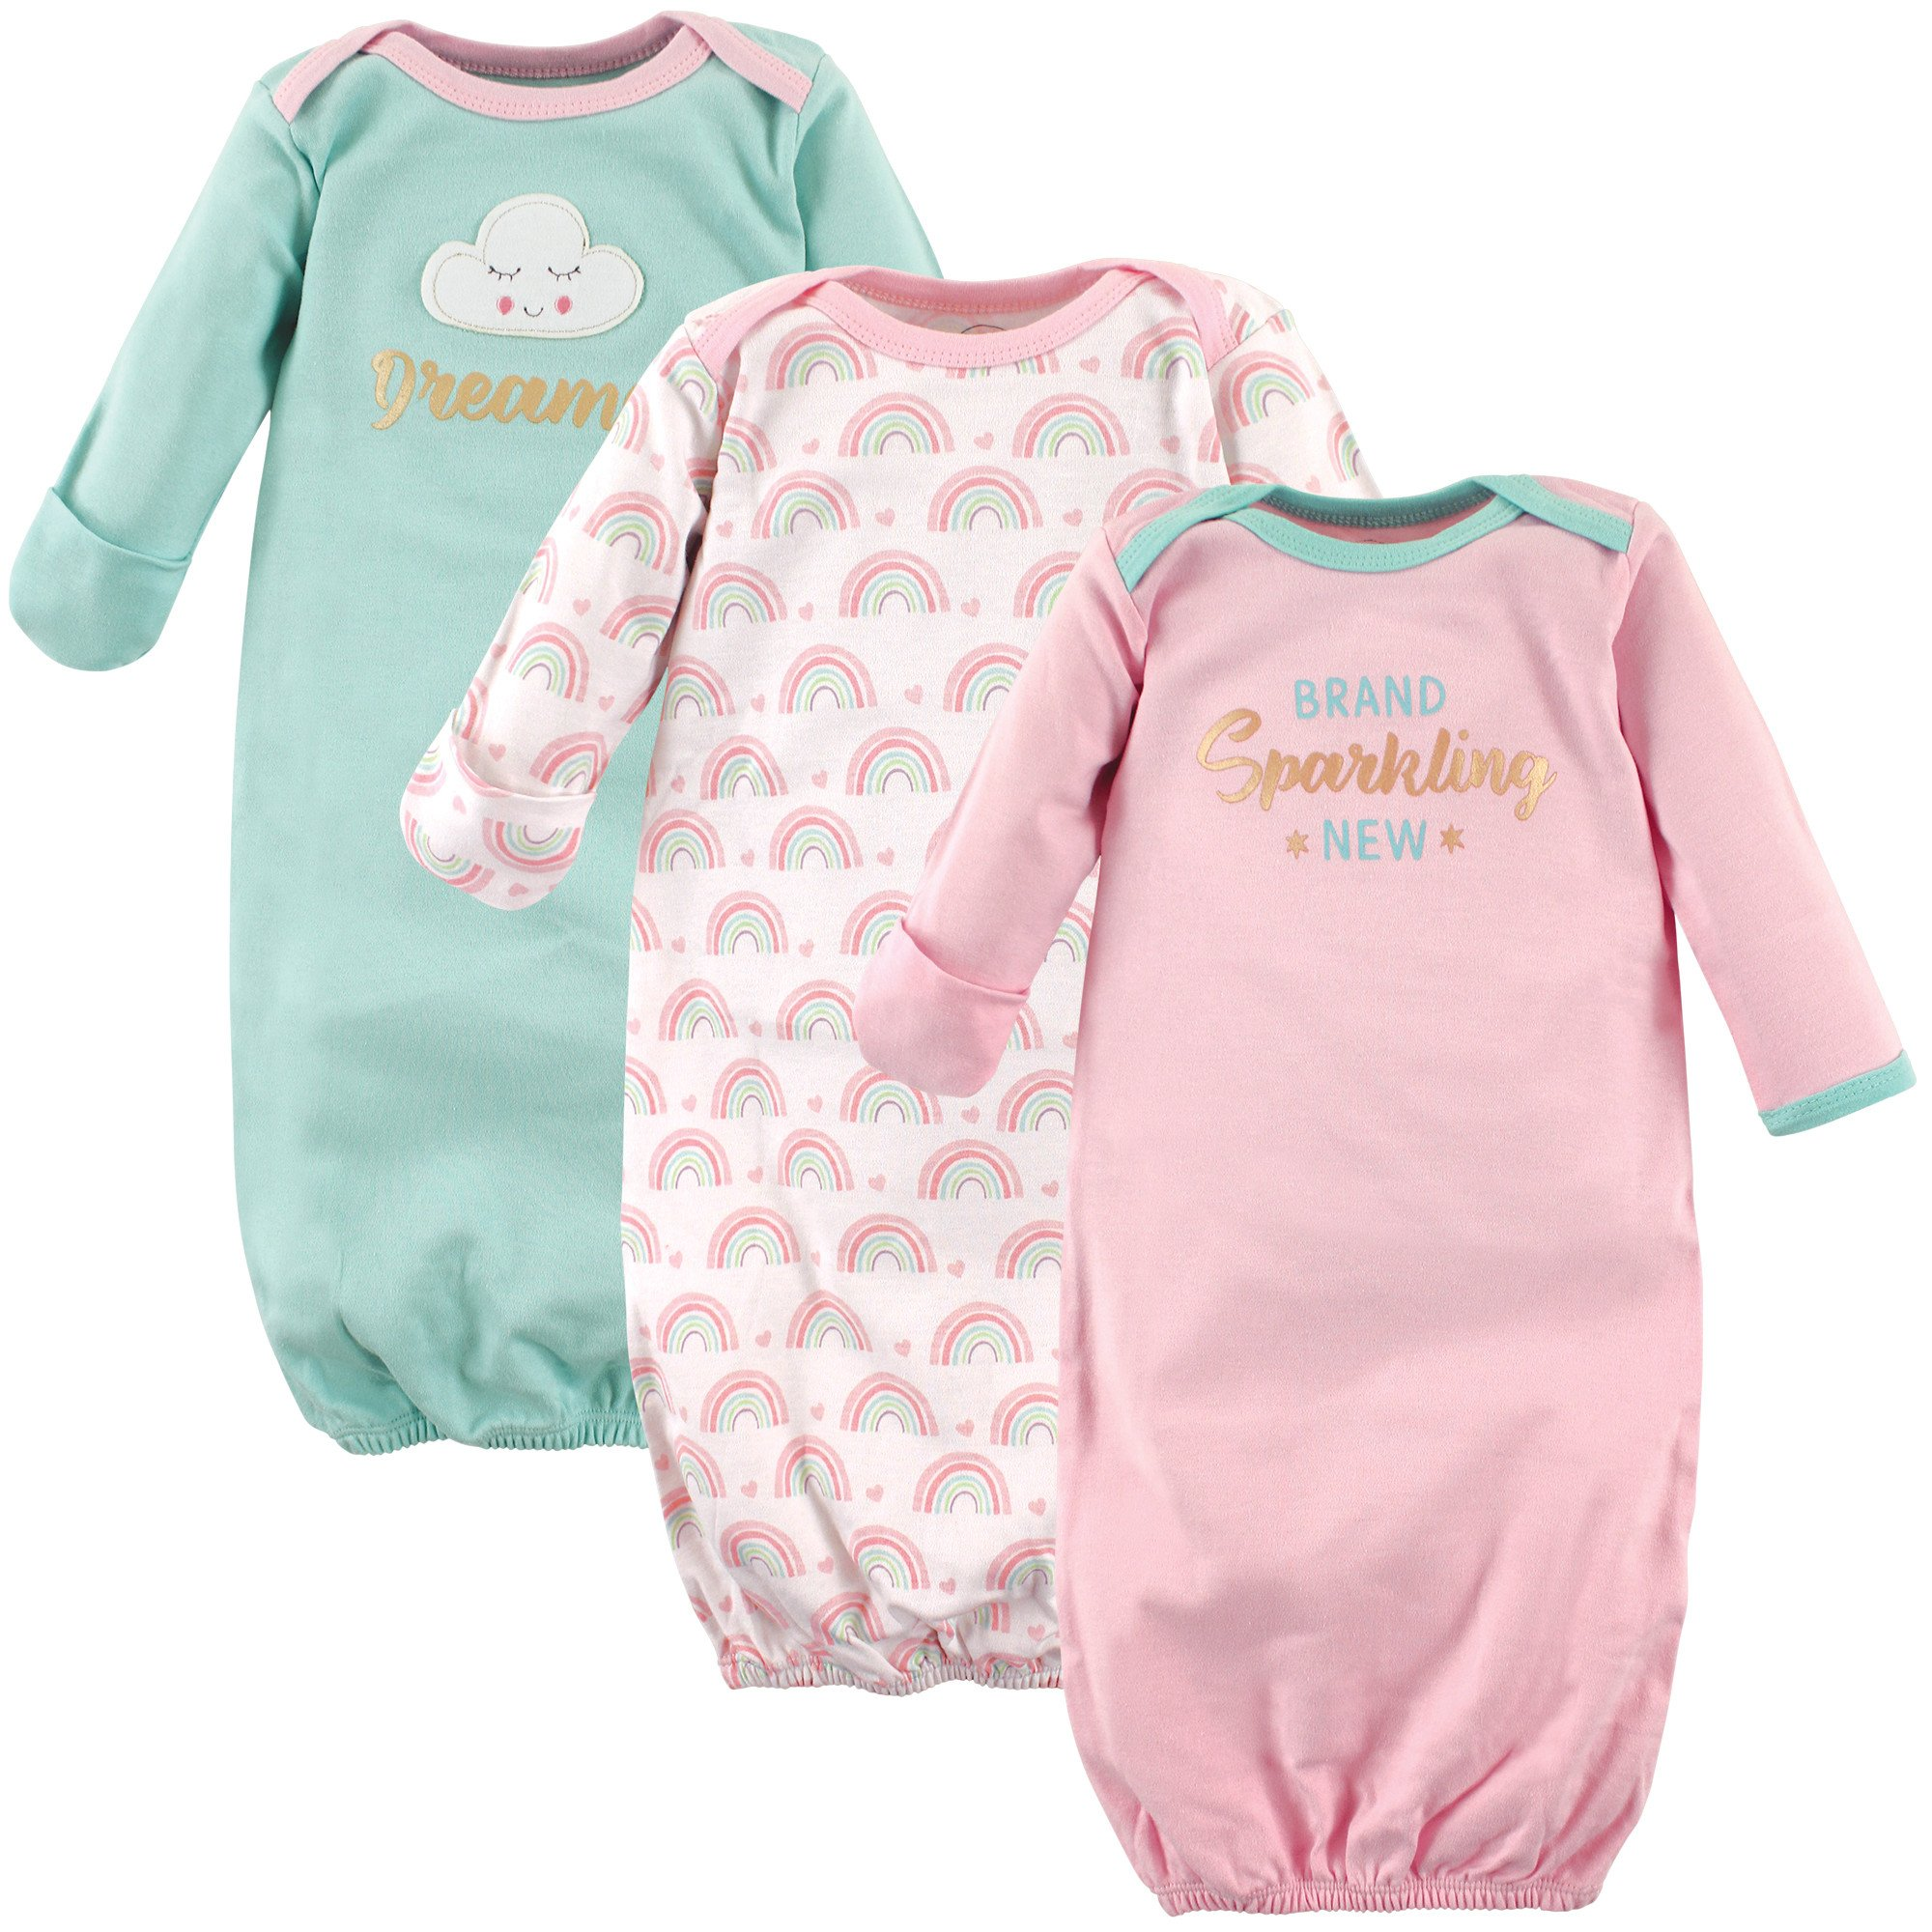 Luvable Friends Baby 3 Pack Cotton Gown, Sparkling New, 0-6 Months by Luvable Friends